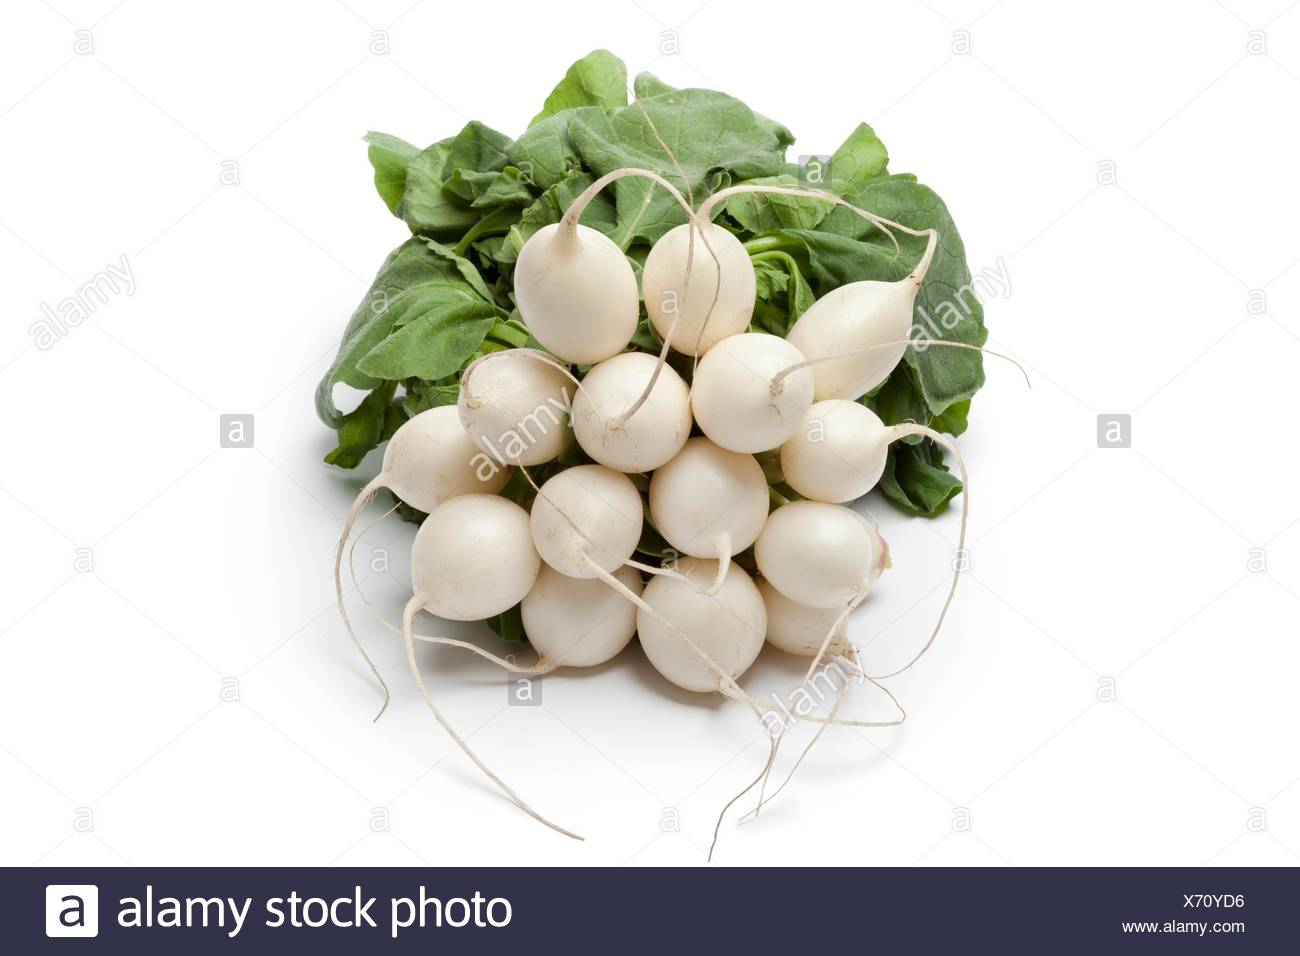 Bunch of white radish on white background - Stock Image